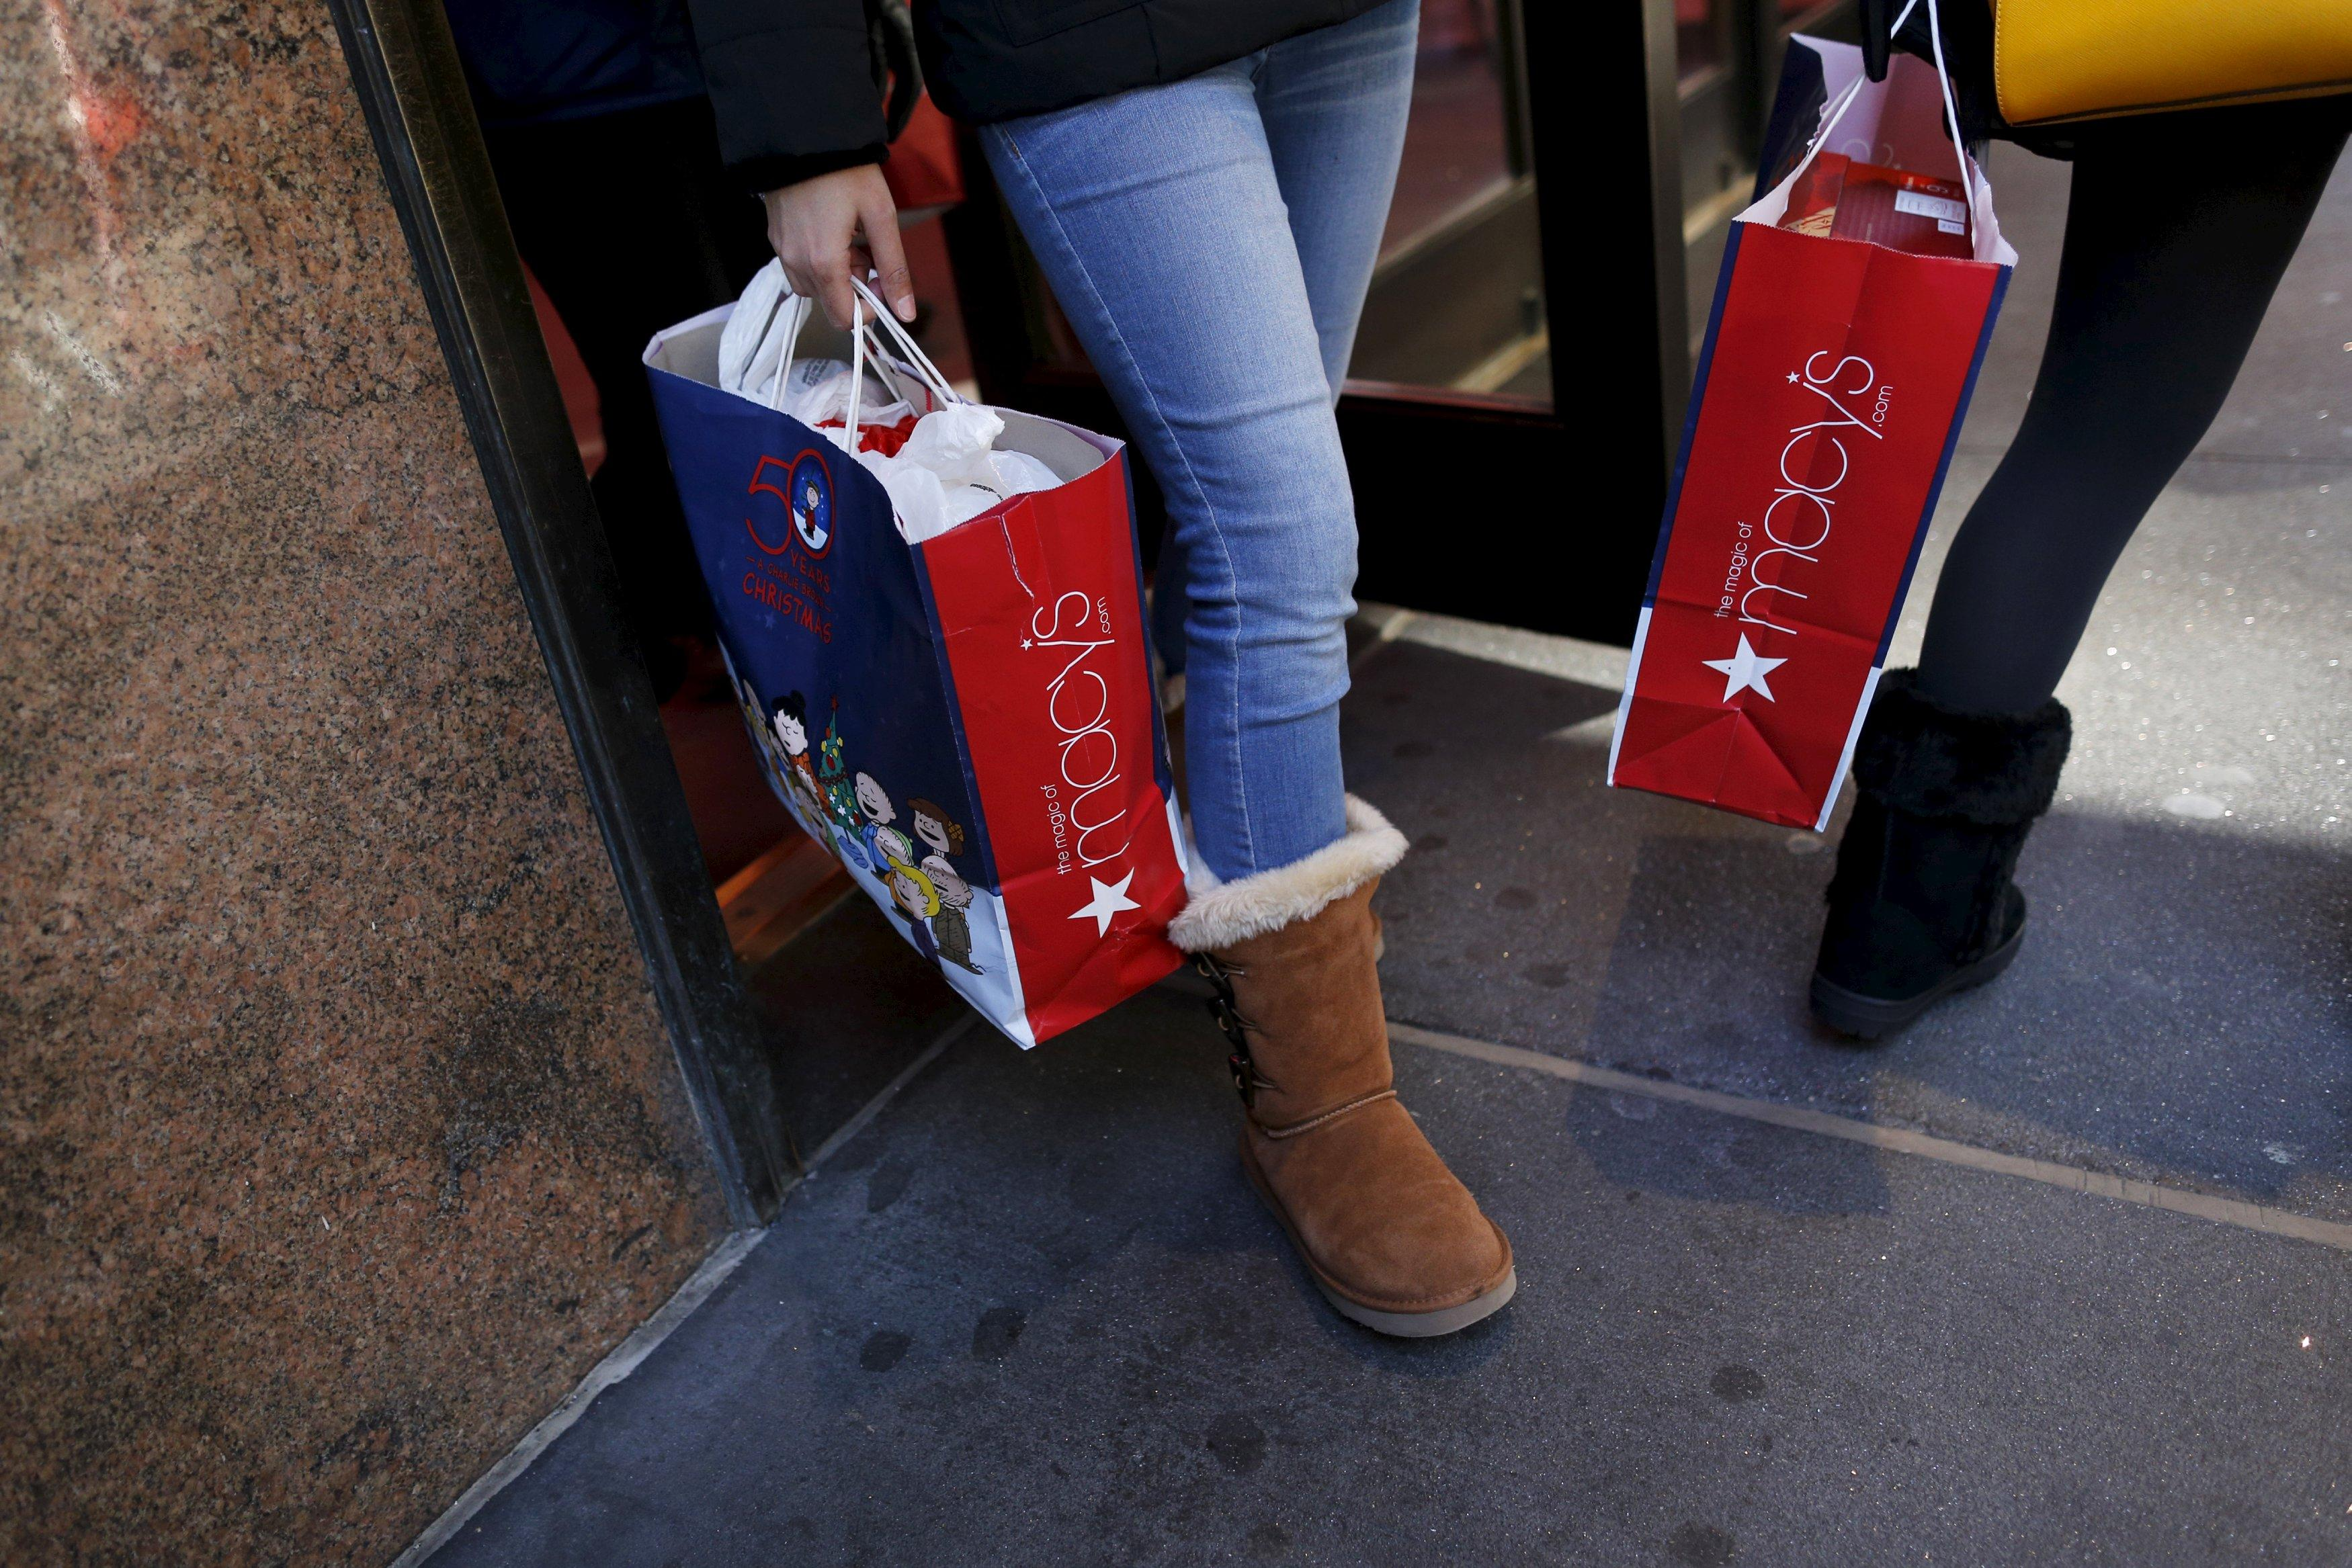 Secret perks: Why department store clerks are so pushy about credit cards